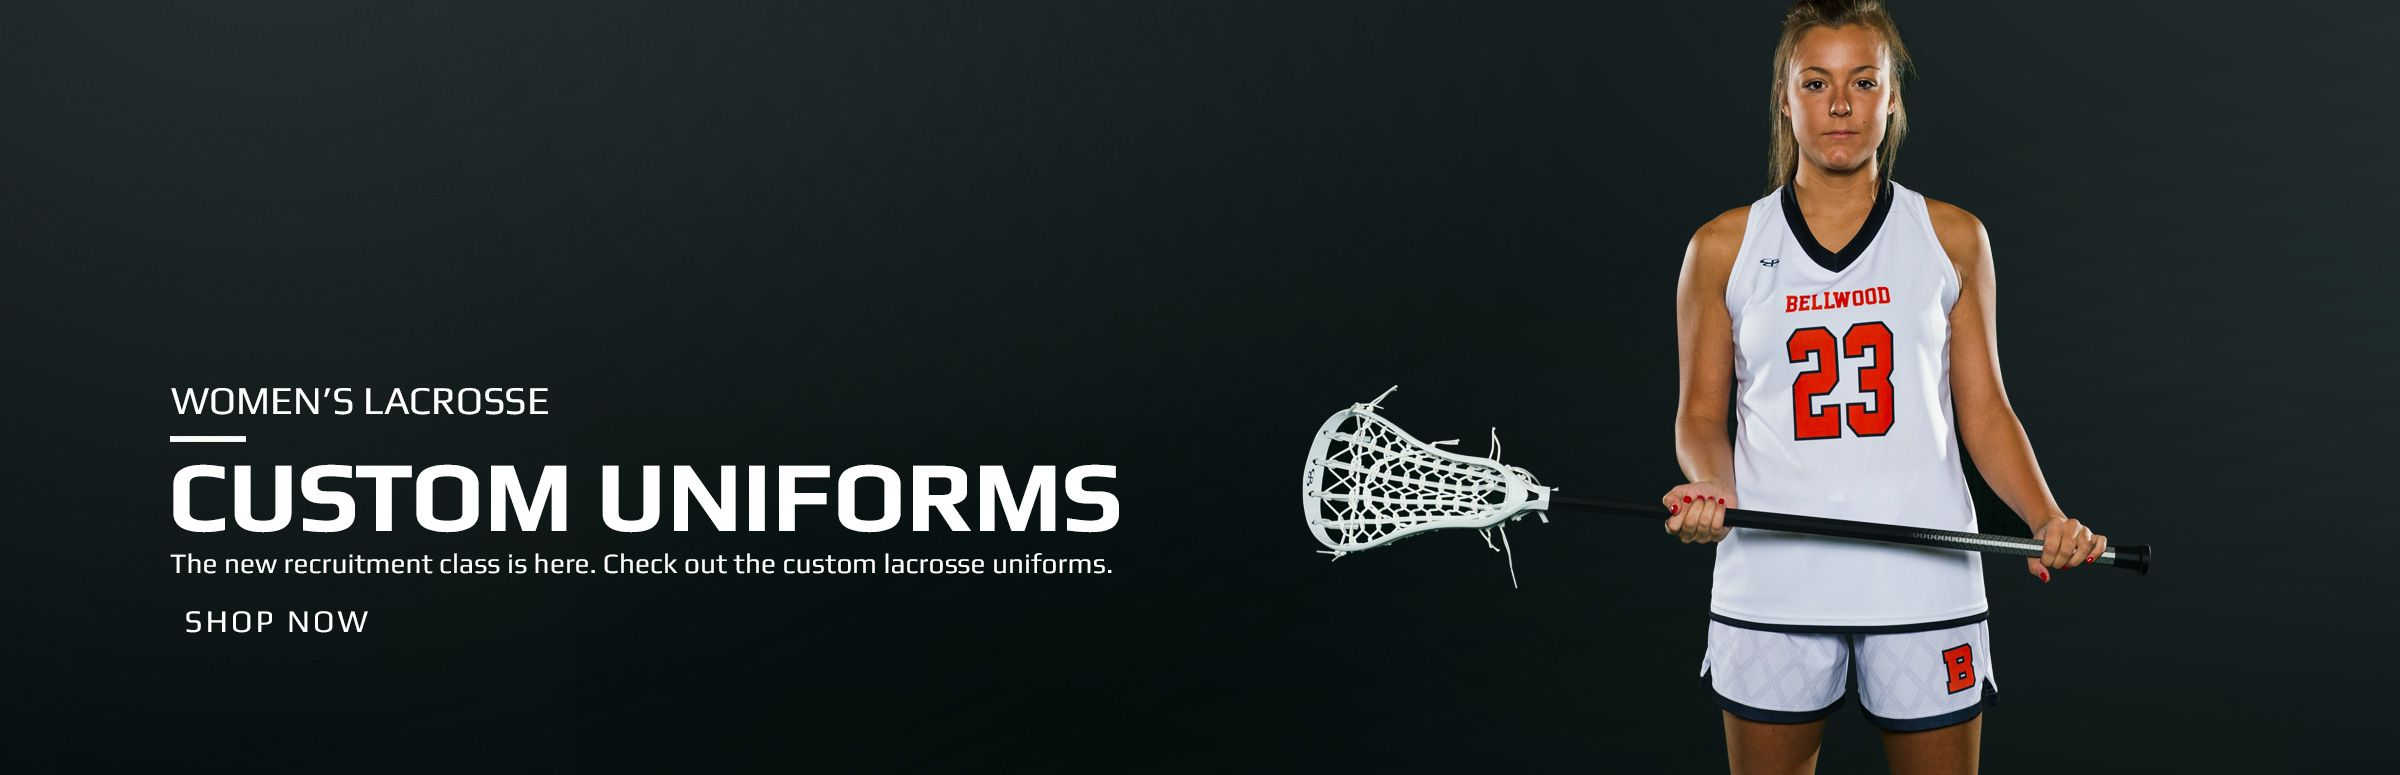 Boombah Custom lacrosse Uniforms